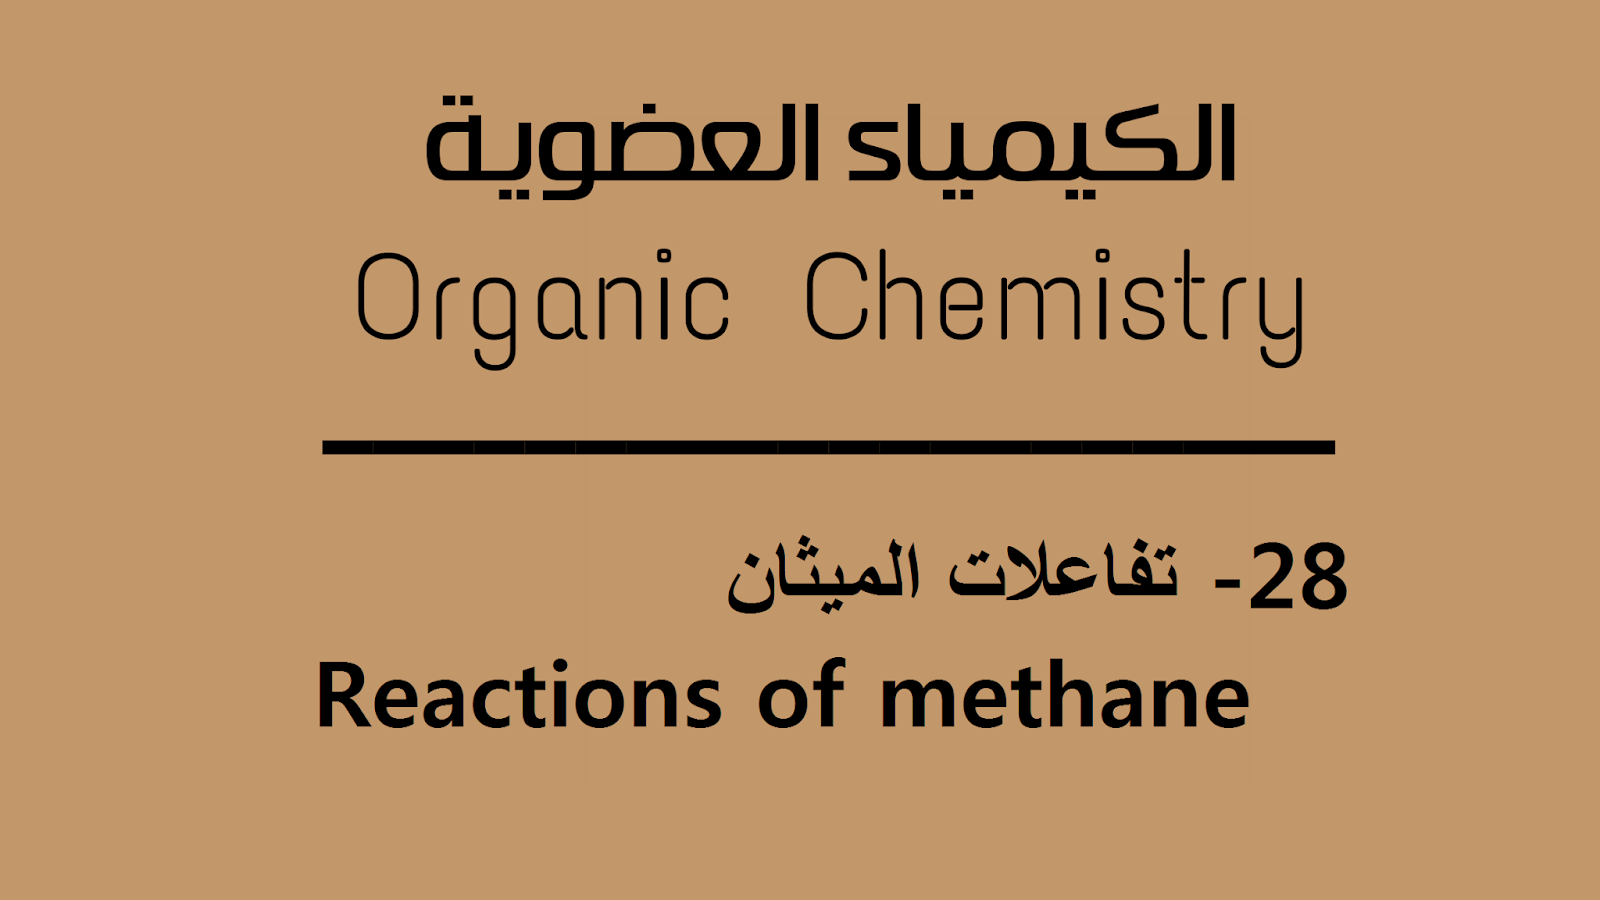 تفاعلات الميثان Reactions Of Methane Organic Chemistry Chemistry Reactions